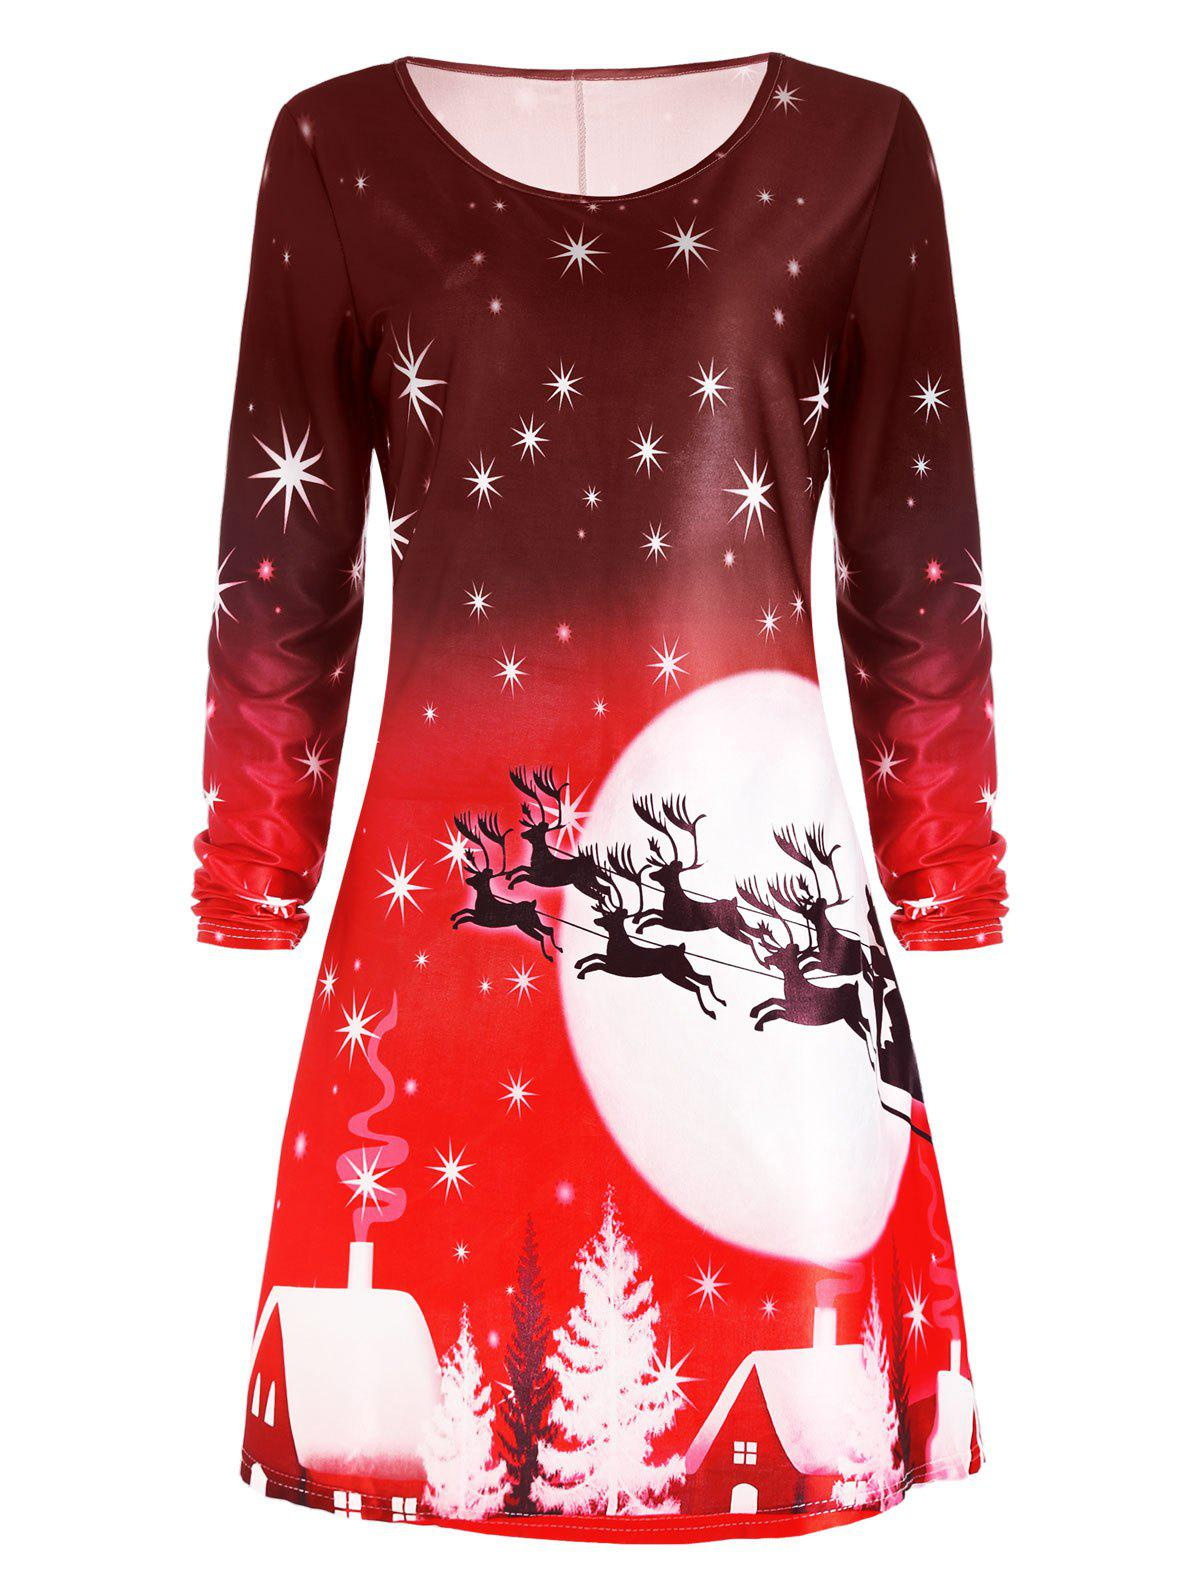 229dcafaa732 82% OFF] Christmas Deer Long Sleeve Tee Skater Dress | Rosegal